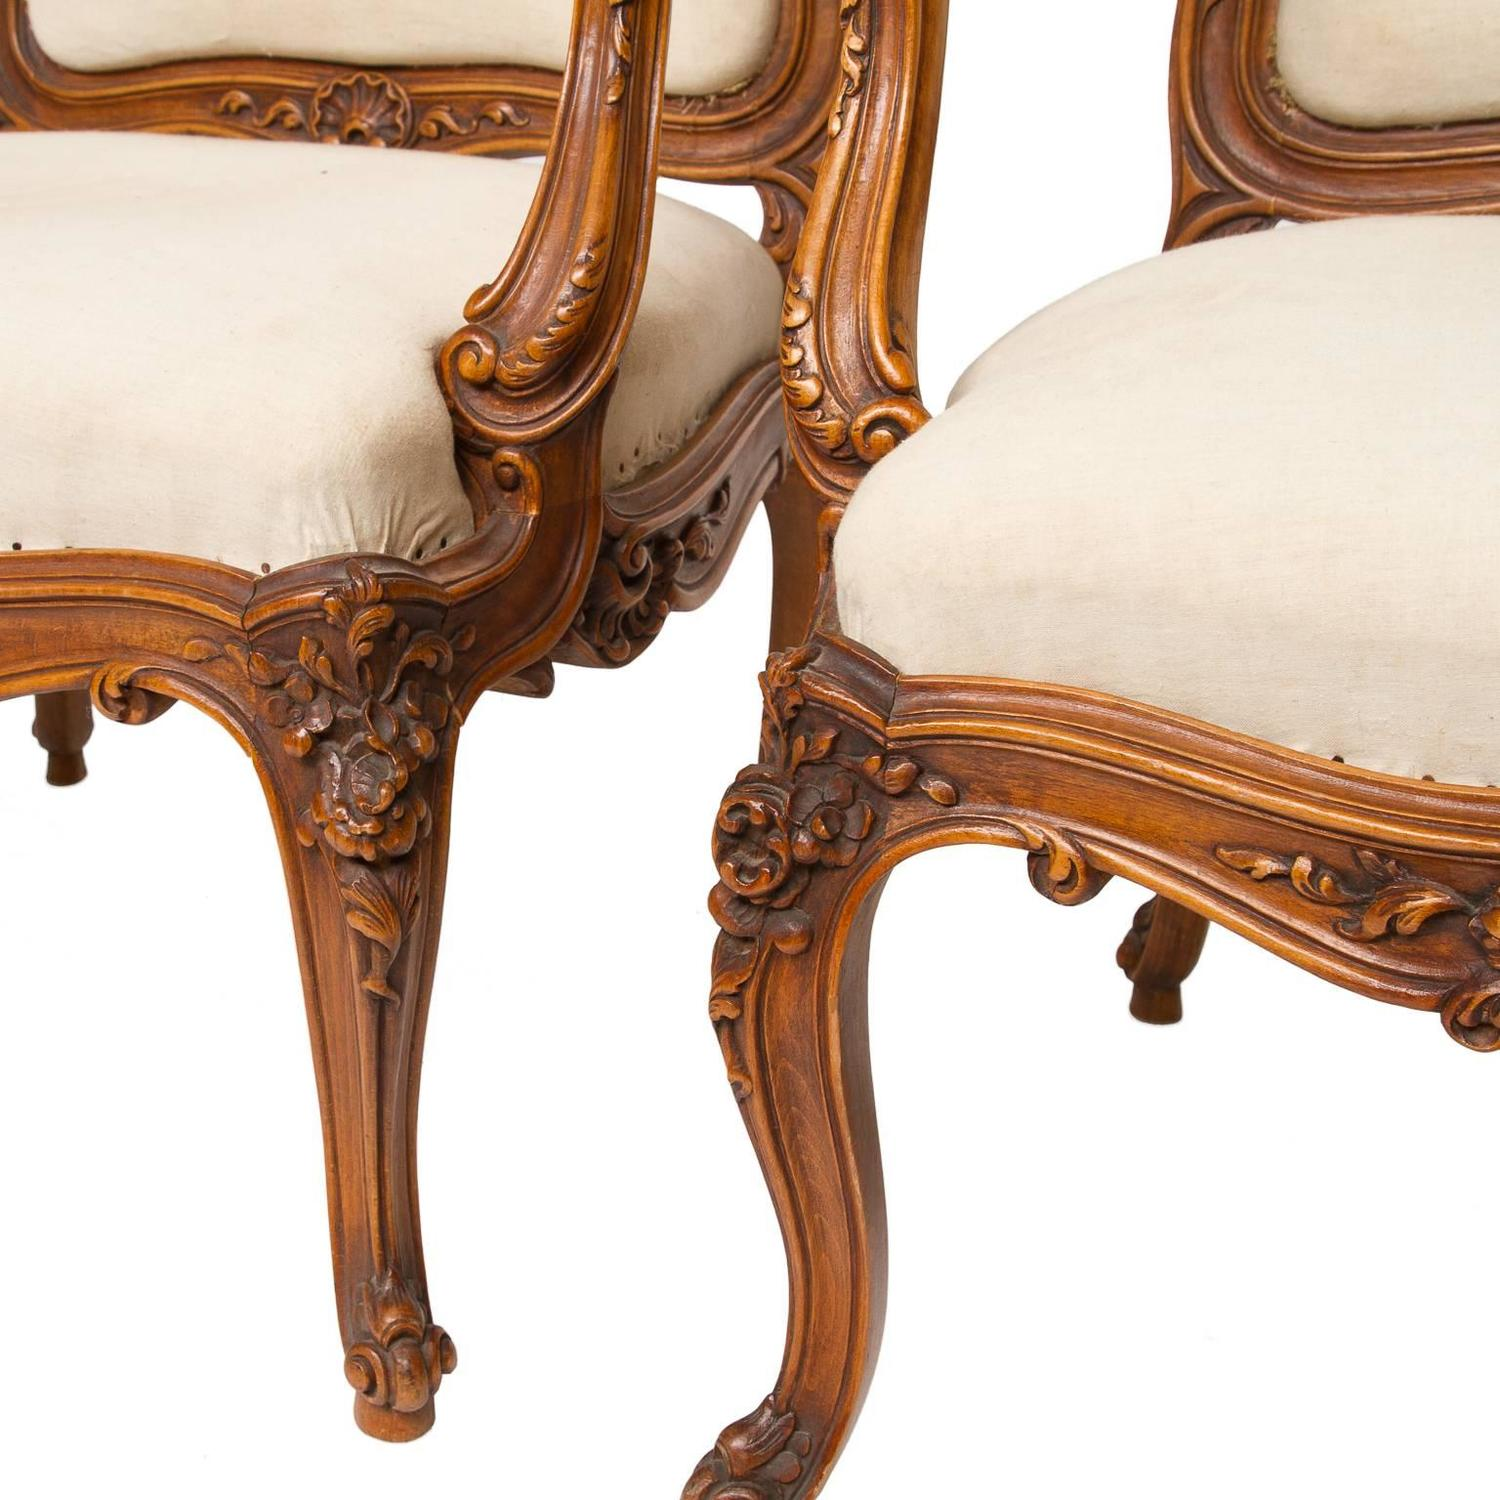 Pair Of Grand Louis Xv Walnut Fauteuils From Lyon At 1stdibs